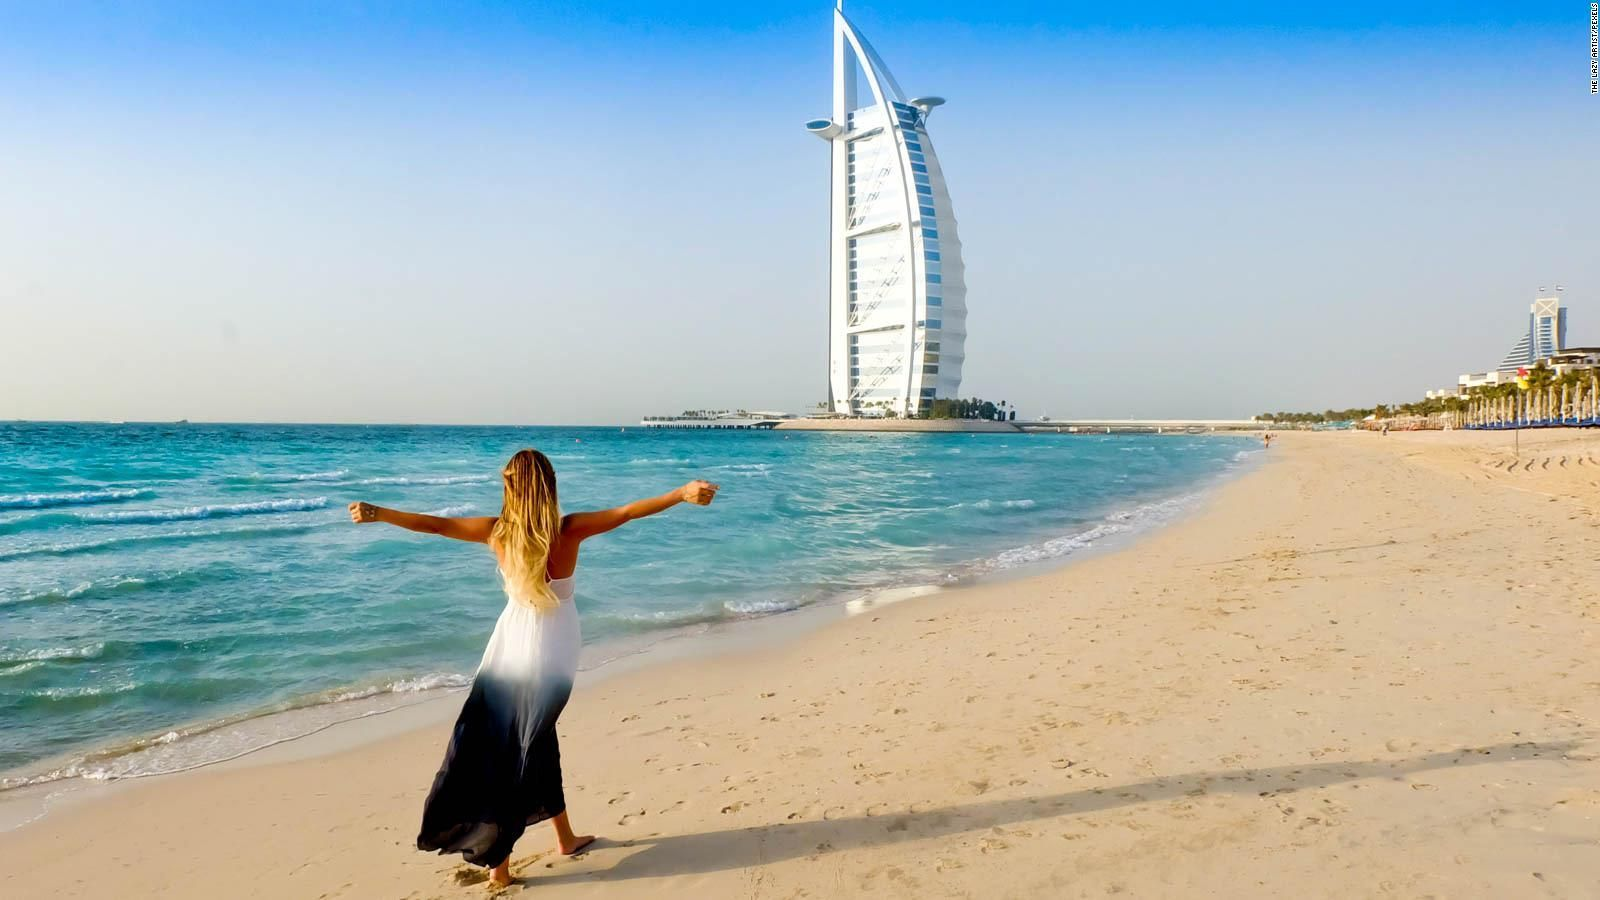 Dubai Beach Images Hd in 2020 Dubai beach, Cnn travel